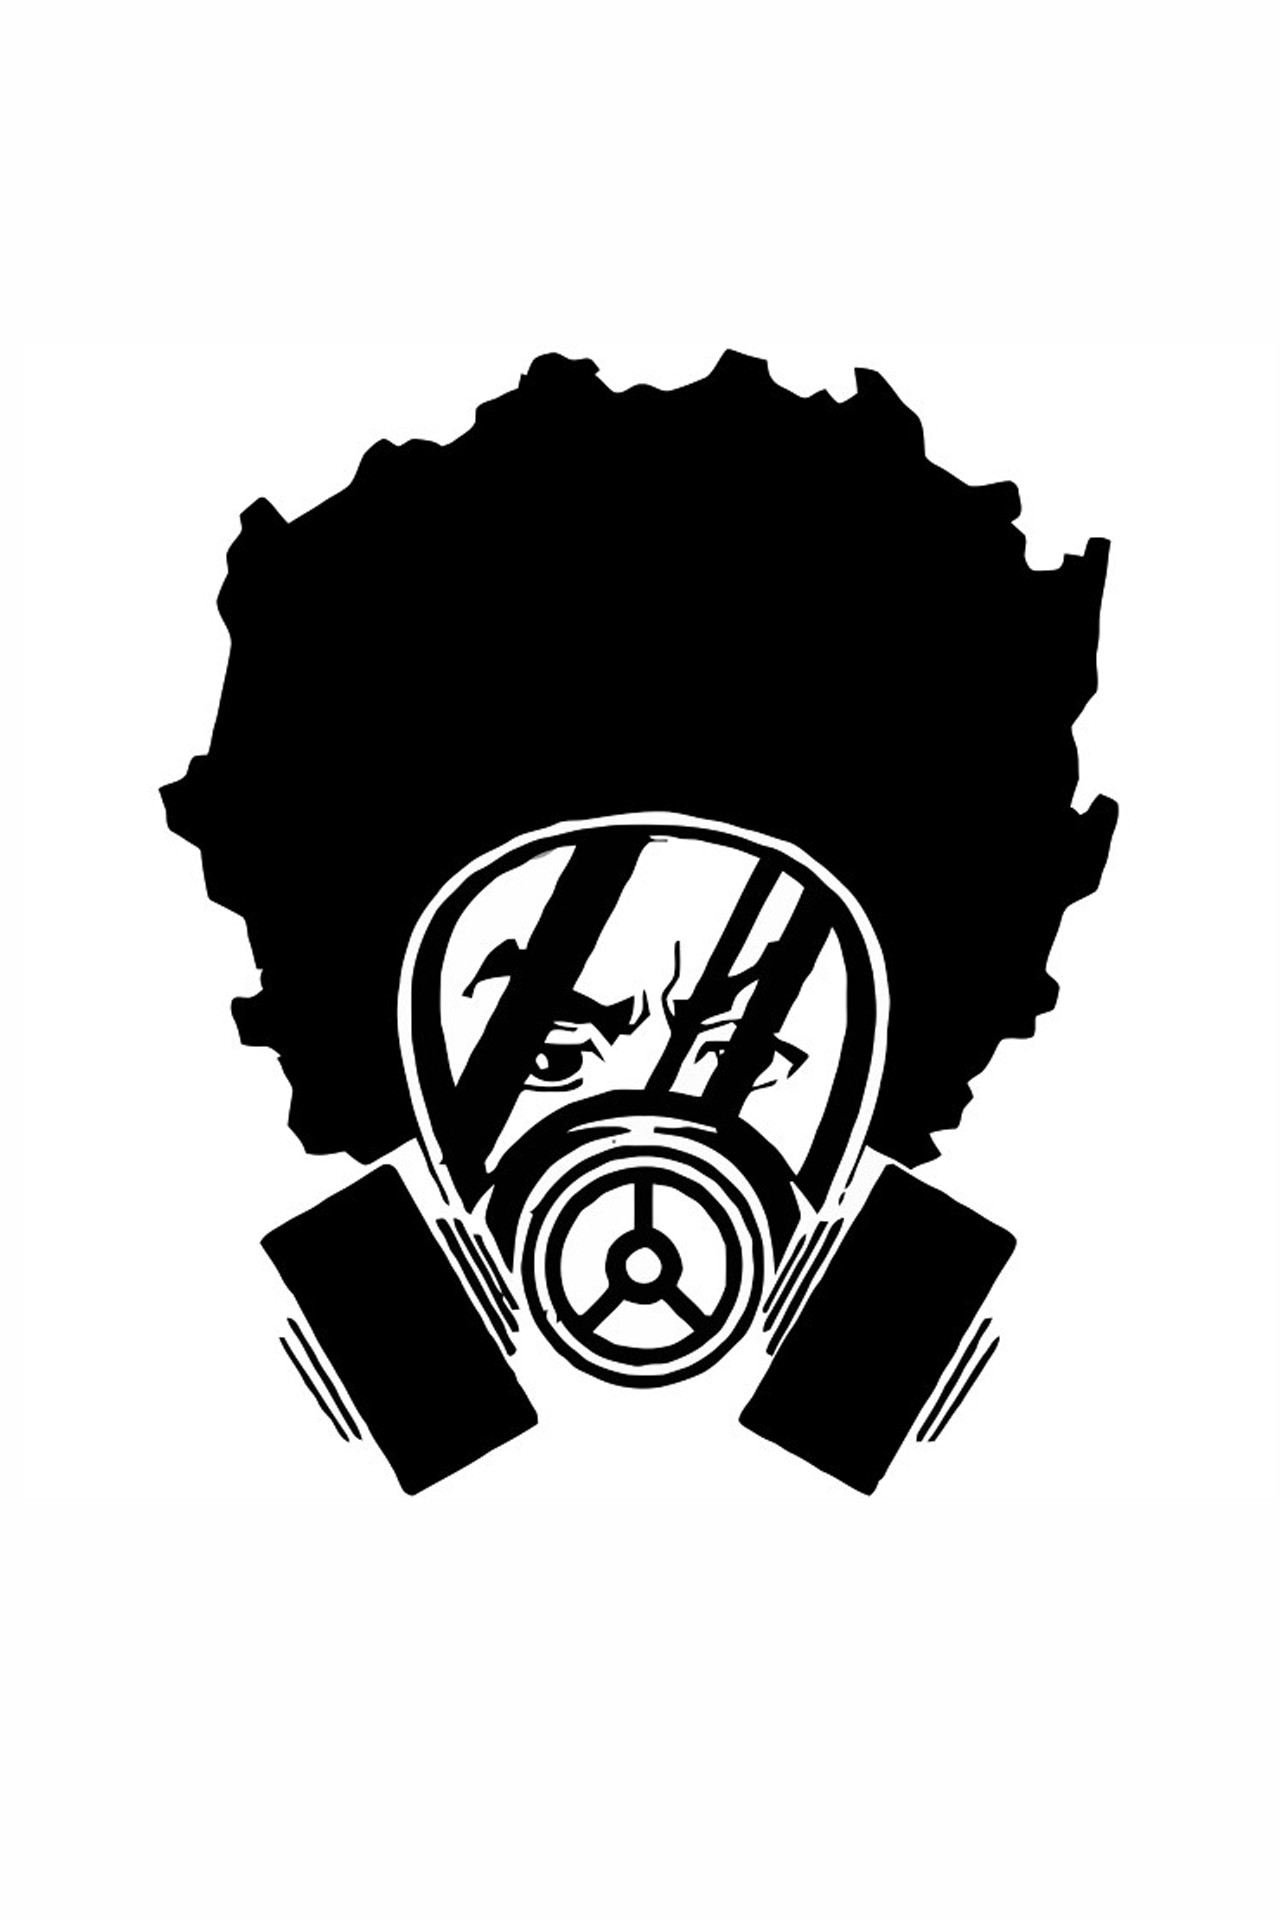 Res: 1280x1920, Huey Freeman Only Speaks The Truth / The Boondocks